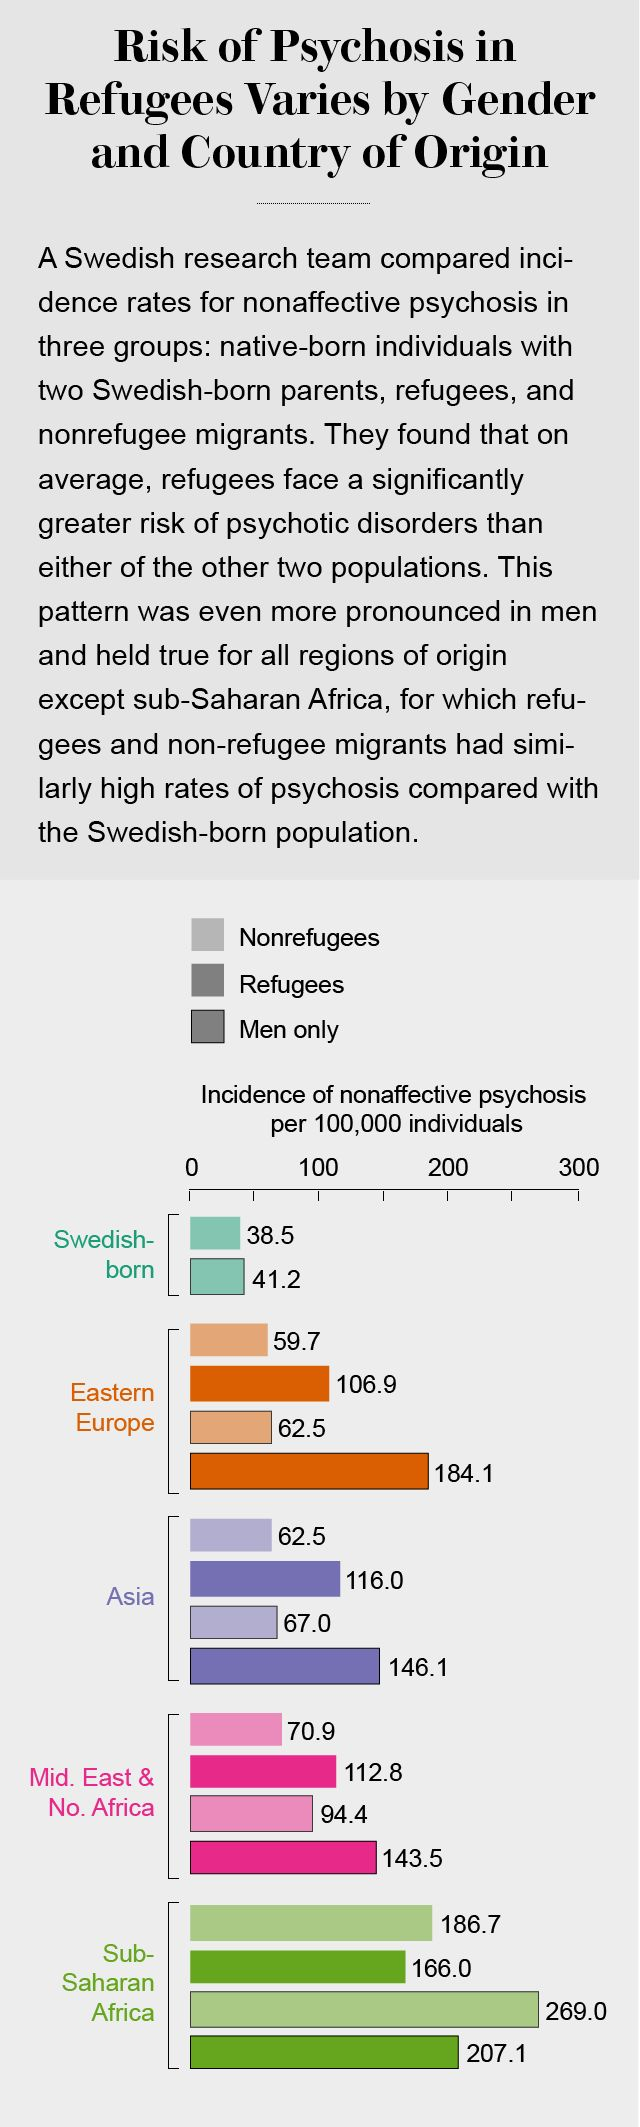 A new study finds that refugees in Sweden have a higher risk than other immigrants, though the precise reasons are unclear